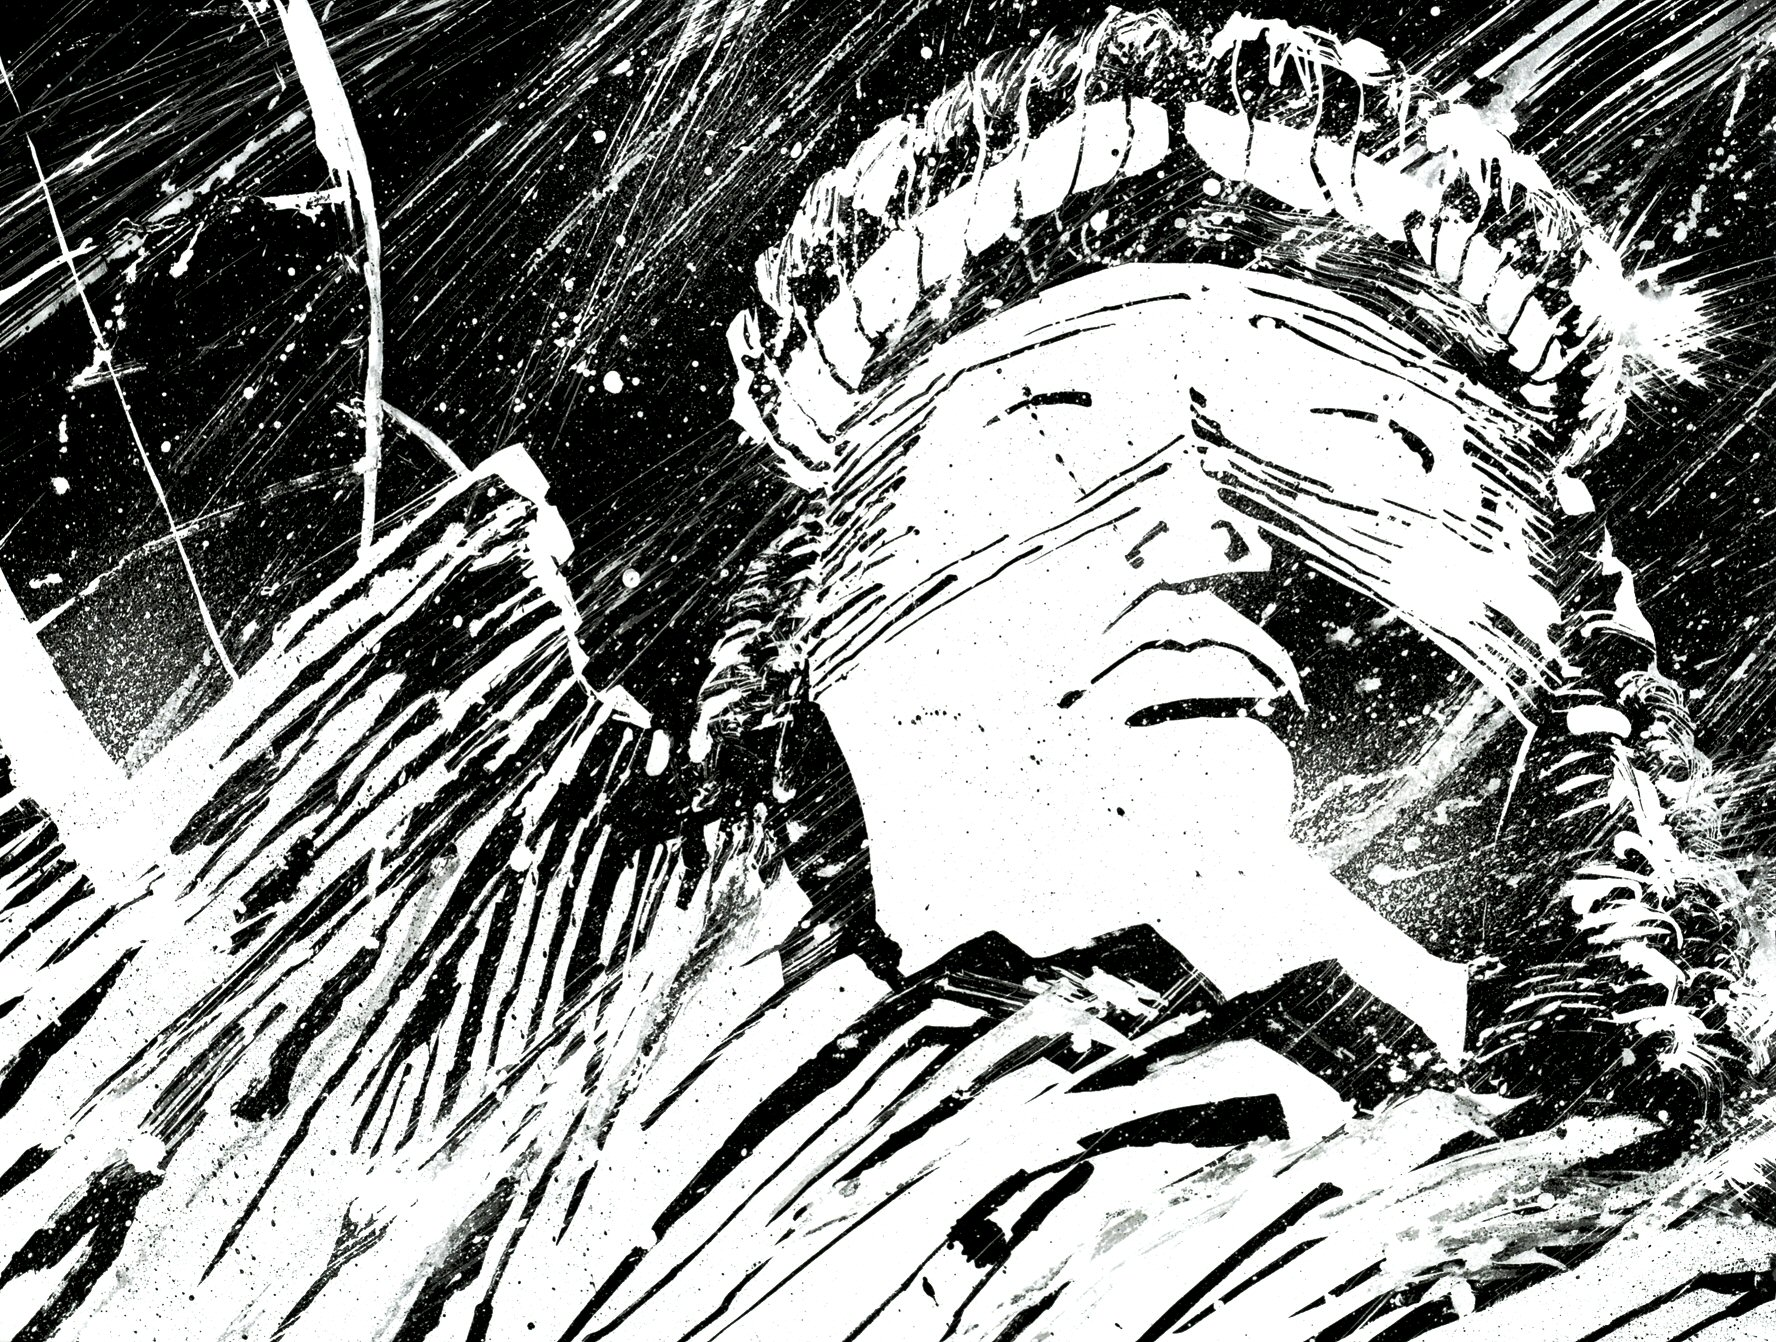 Read online Frank Miller's Holy Terror comic -  Issue # TPB - 11